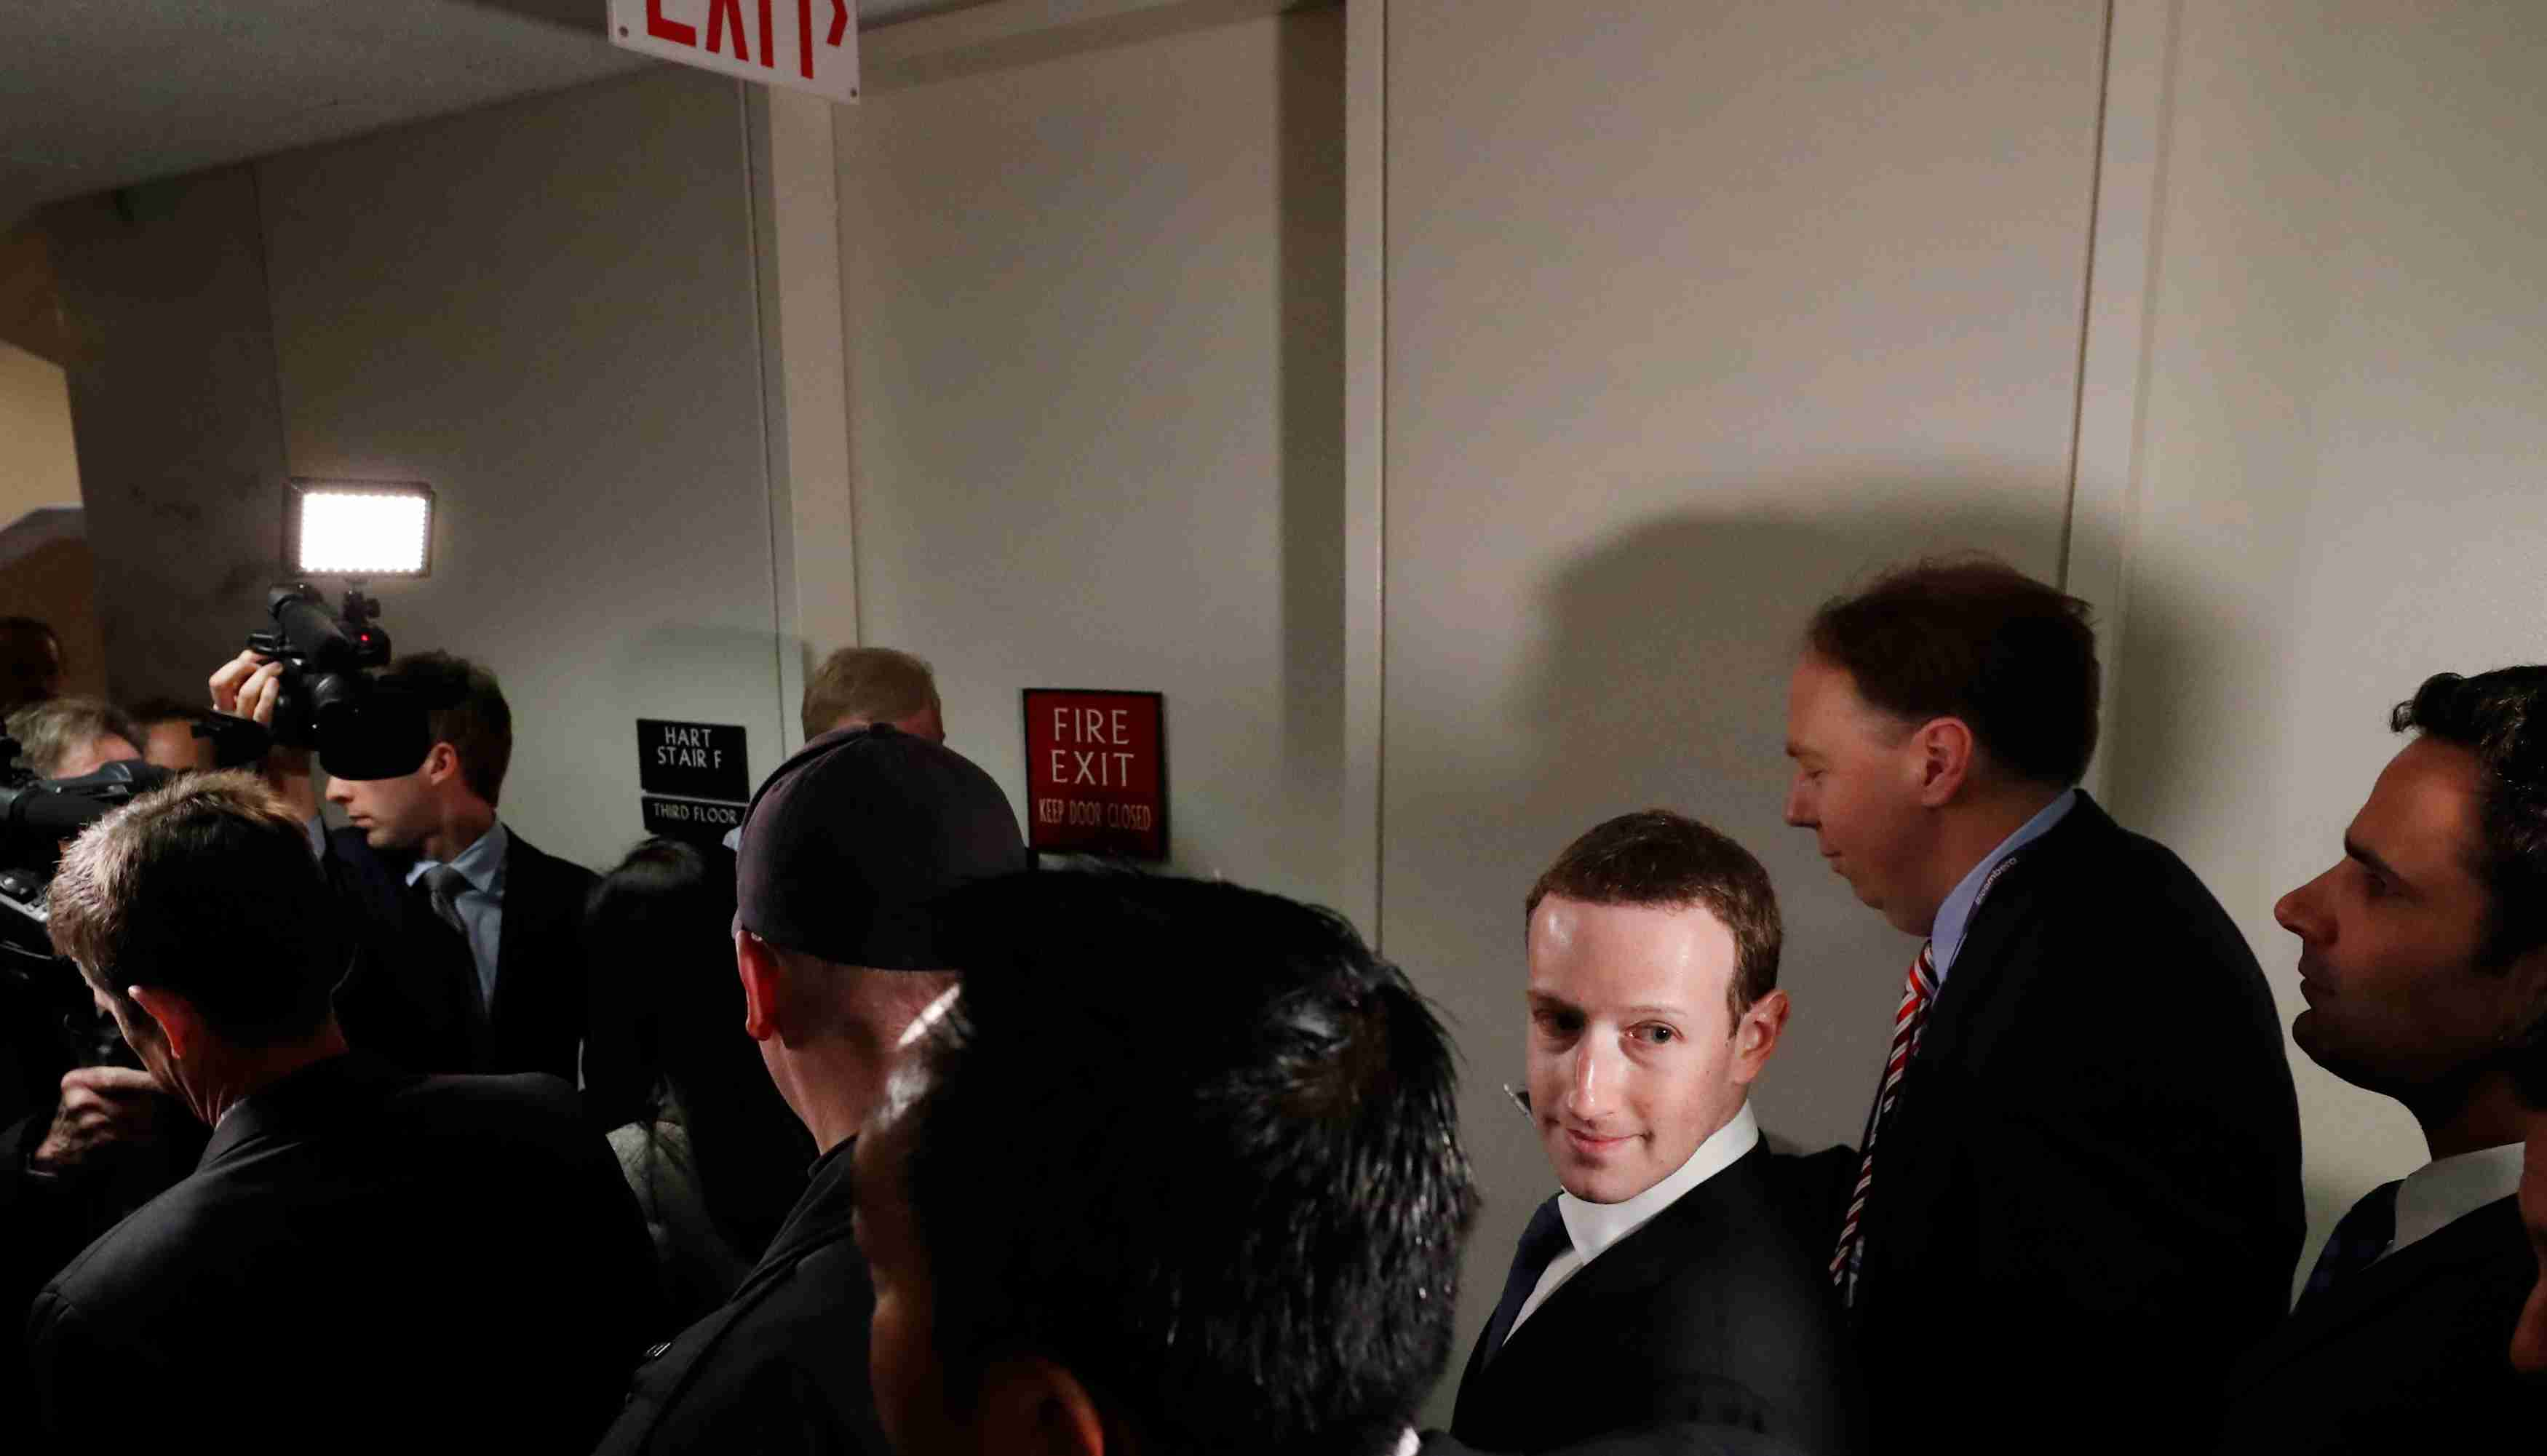 Members of the media (L) keep pace with Facebook CEO Mark Zuckerberg